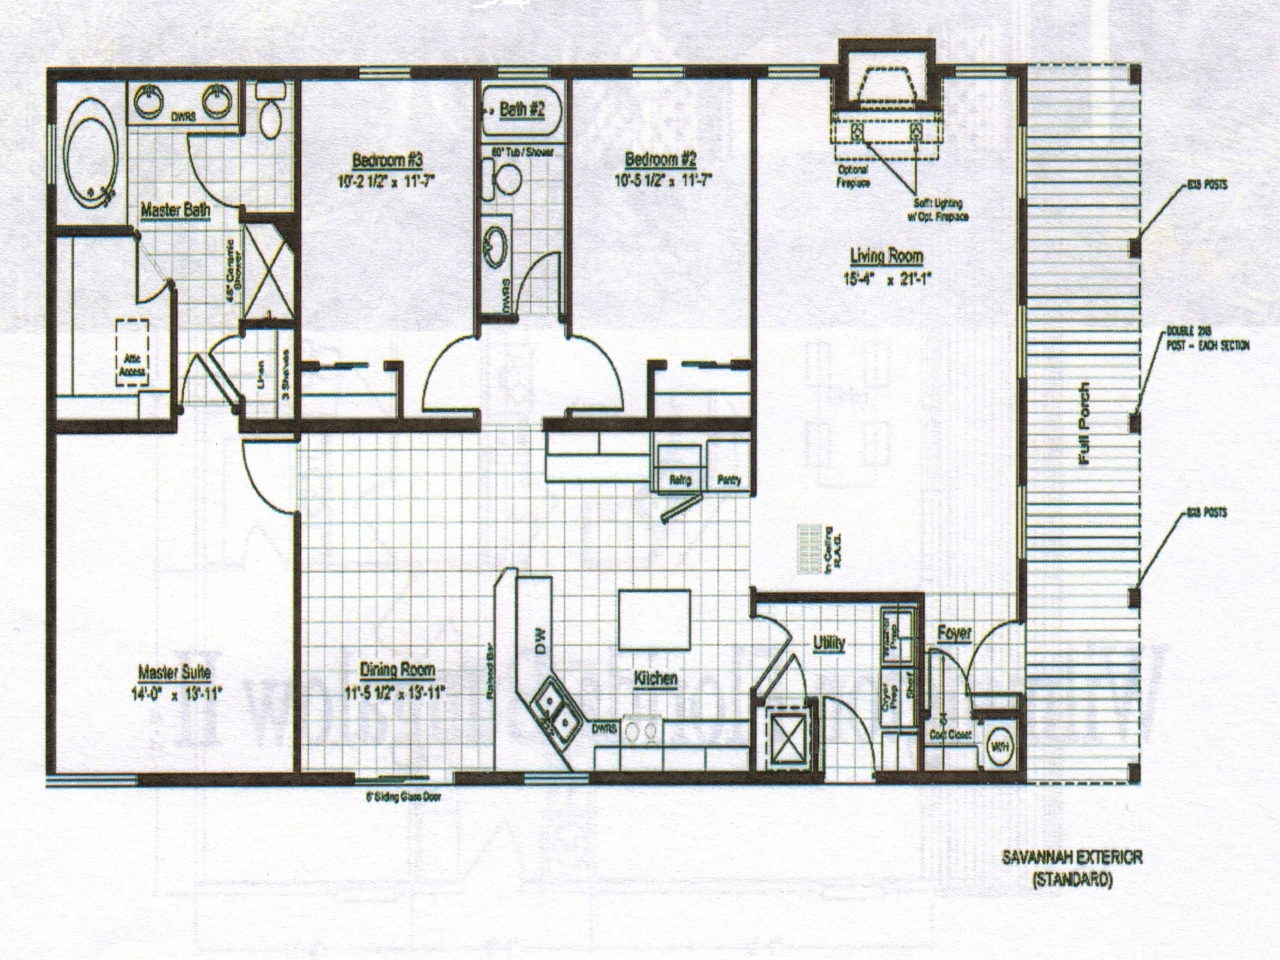 Bungalow home design floor plans bungalow house plans with for House plans canada bungalow